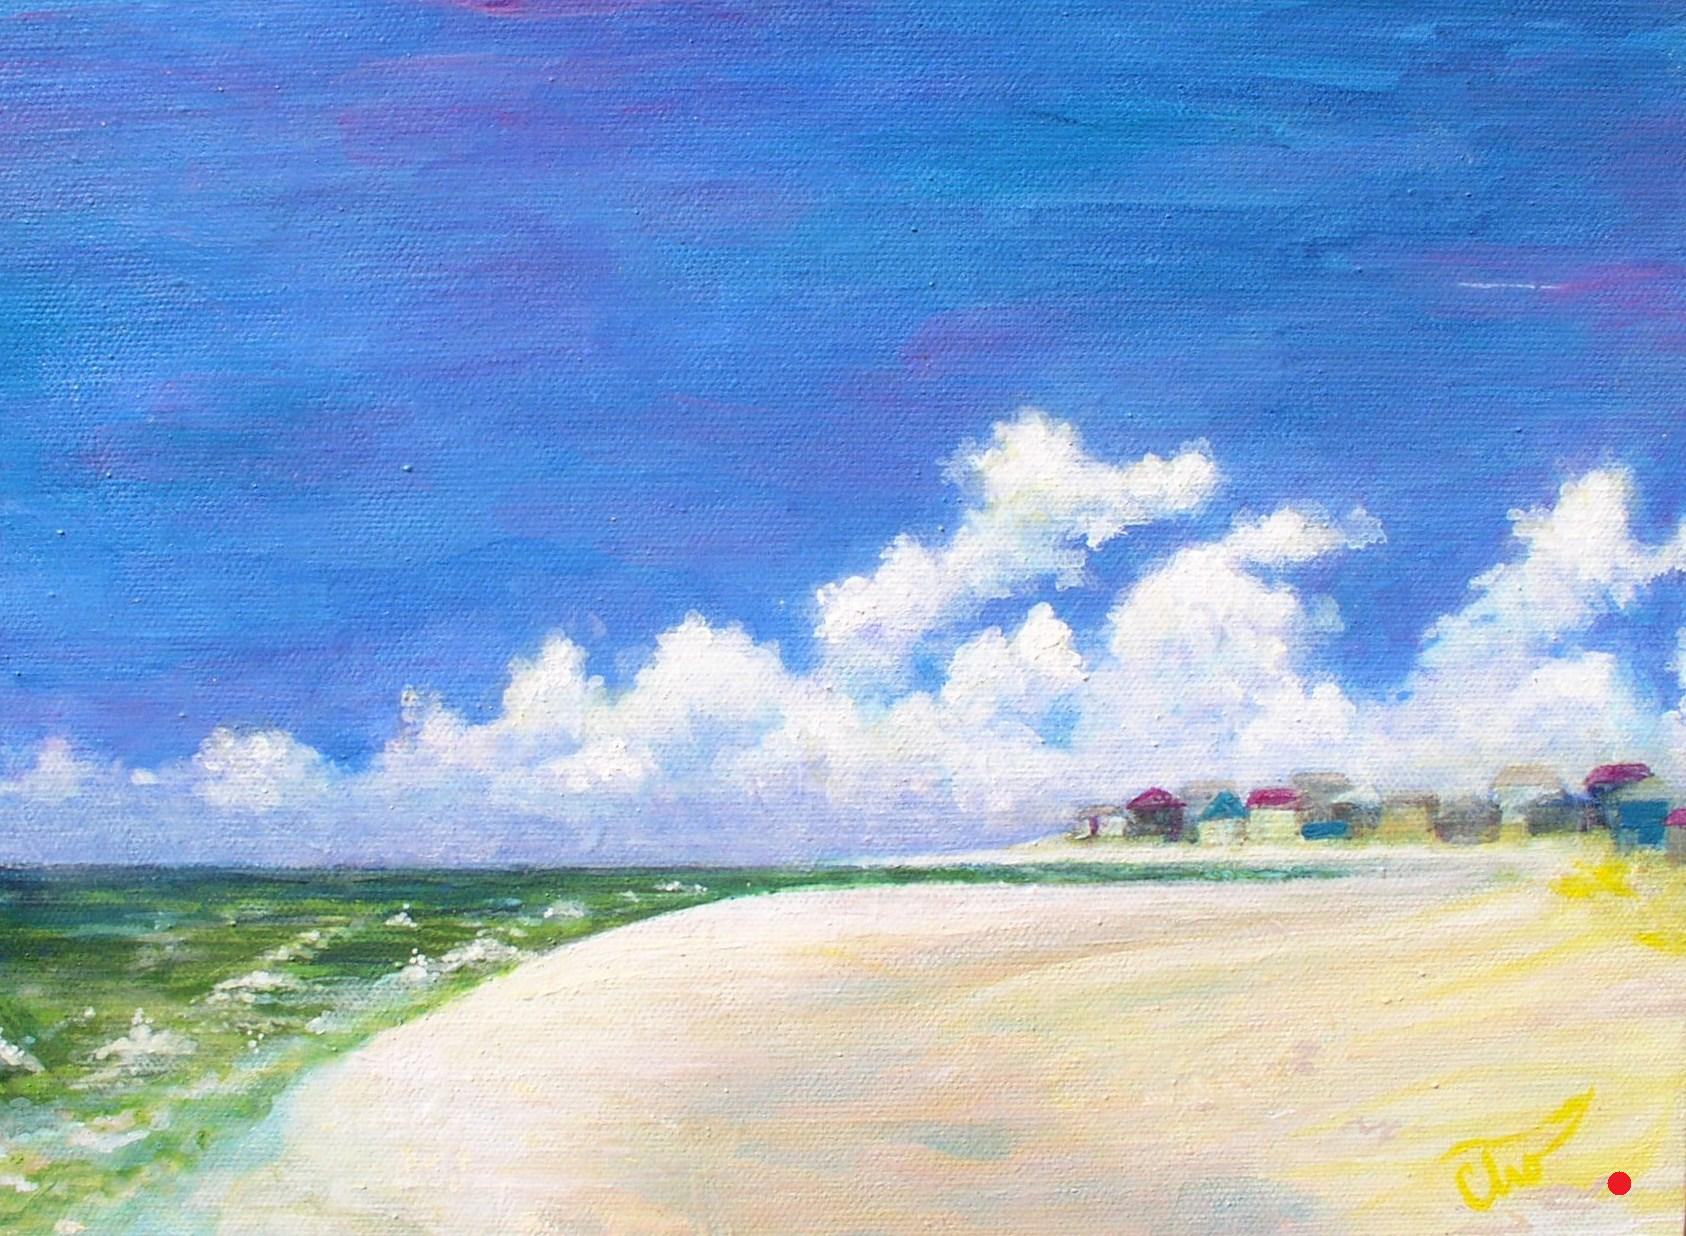 Little Houses by the Sea 9x12 May10.JPG